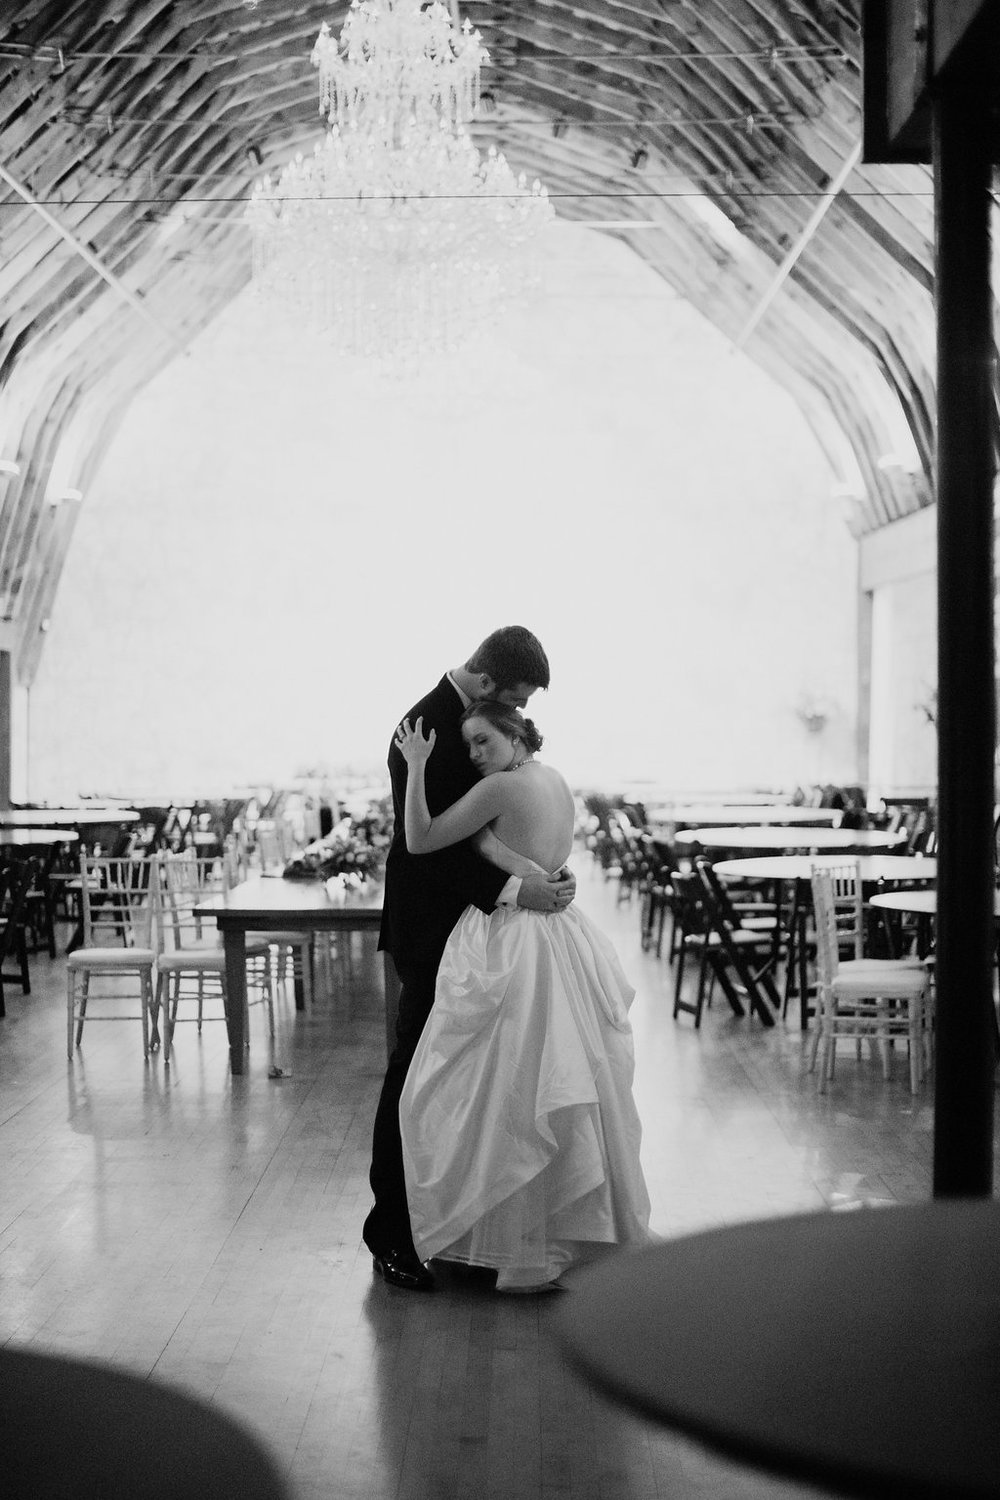 Bride & groom private last dance/sweetheart dance at Brodie Homestead - www.grantdanielsphotography.com